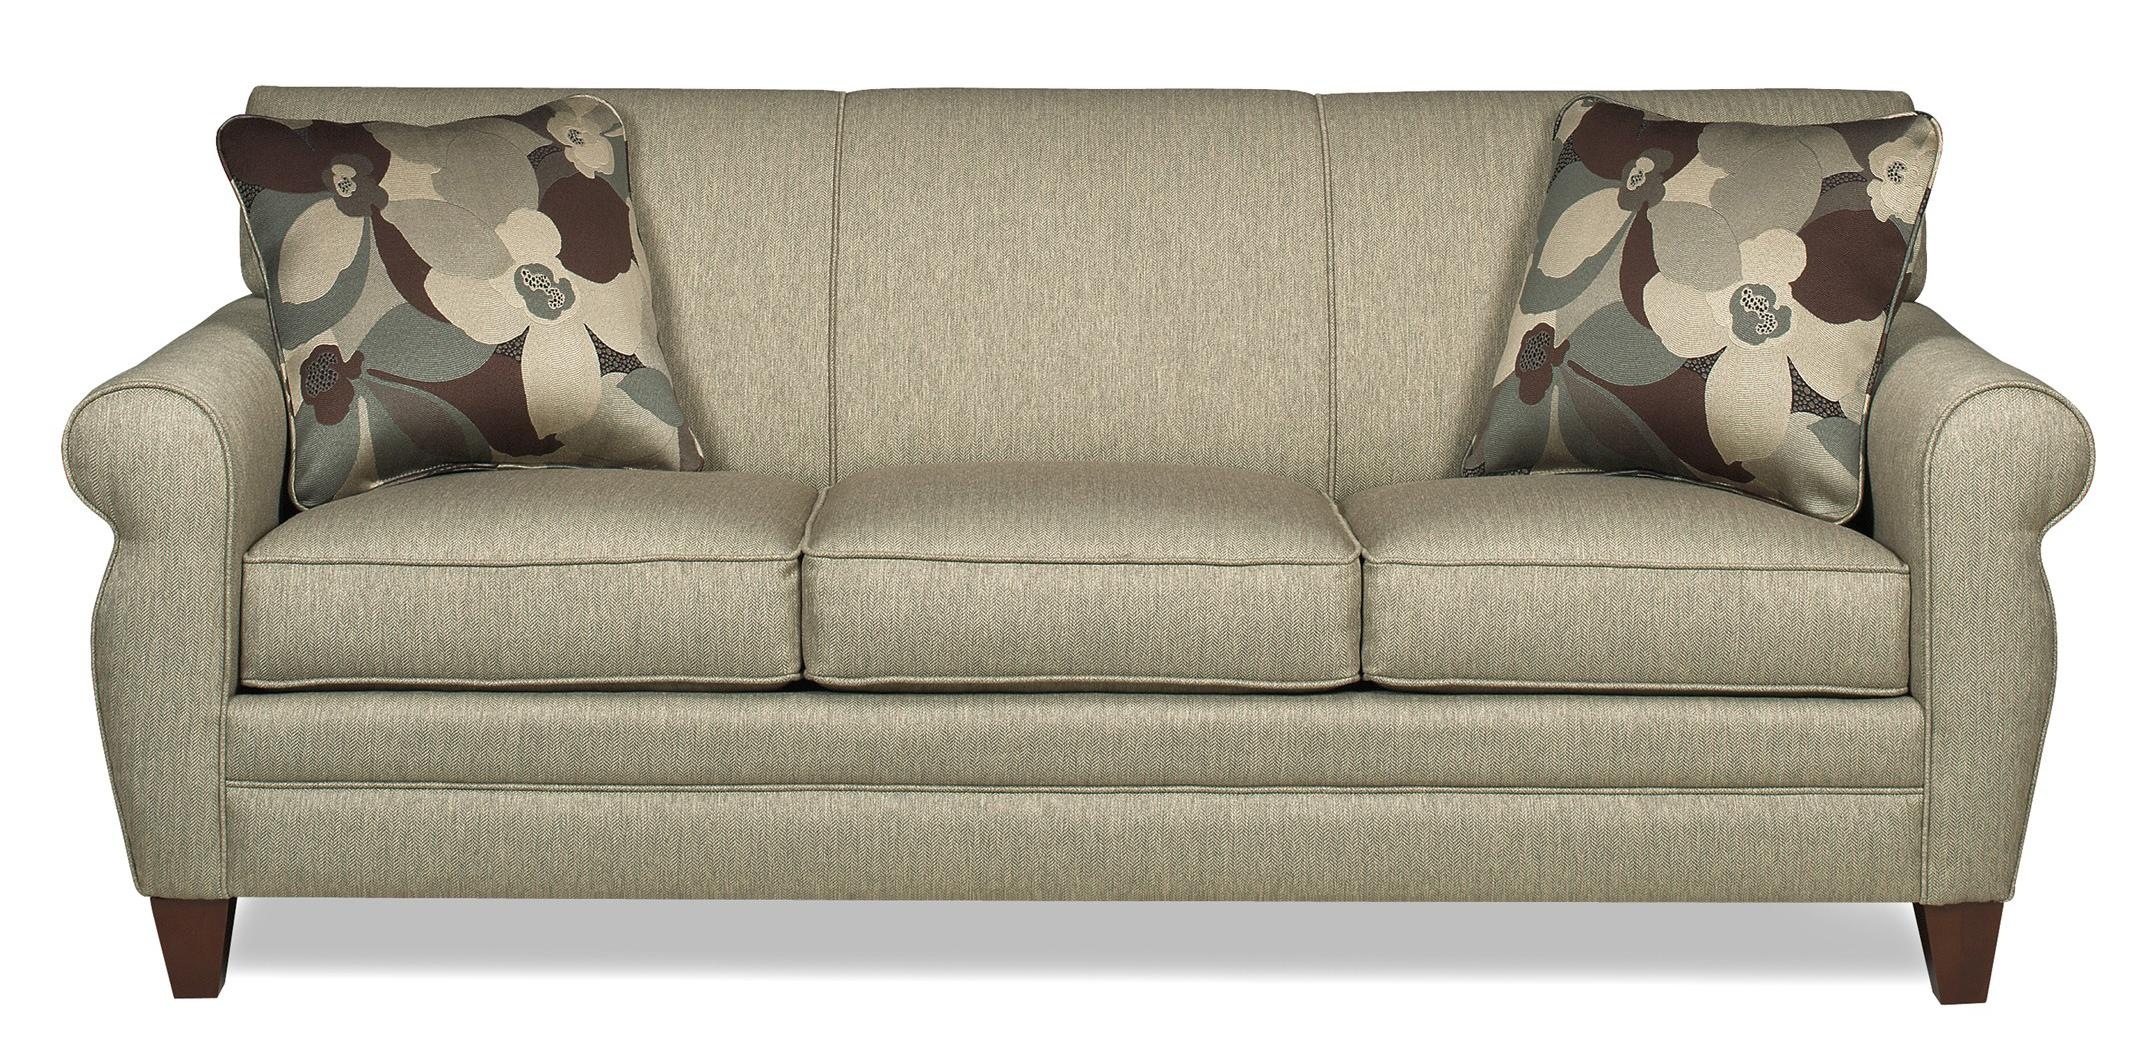 7388 Sofa by Craftmaster at Bullard Furniture